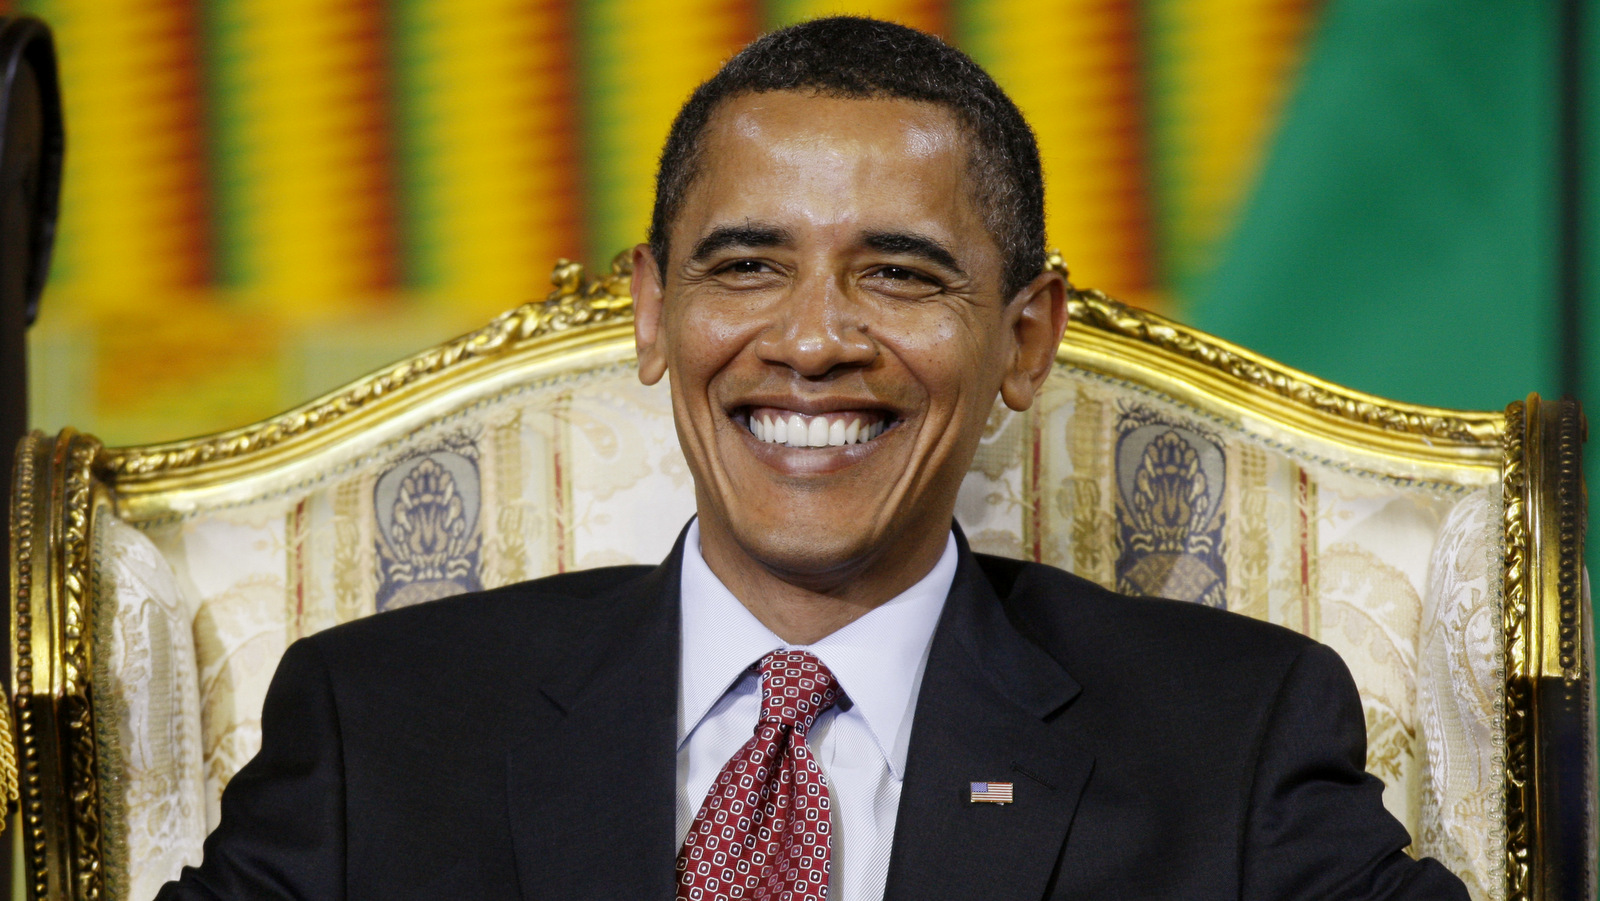 President Barack Obama smiles before he addresses the Ghanaian Parliament in Accra, Ghana, July 11, 2009. (AP/Charles Dharapak)